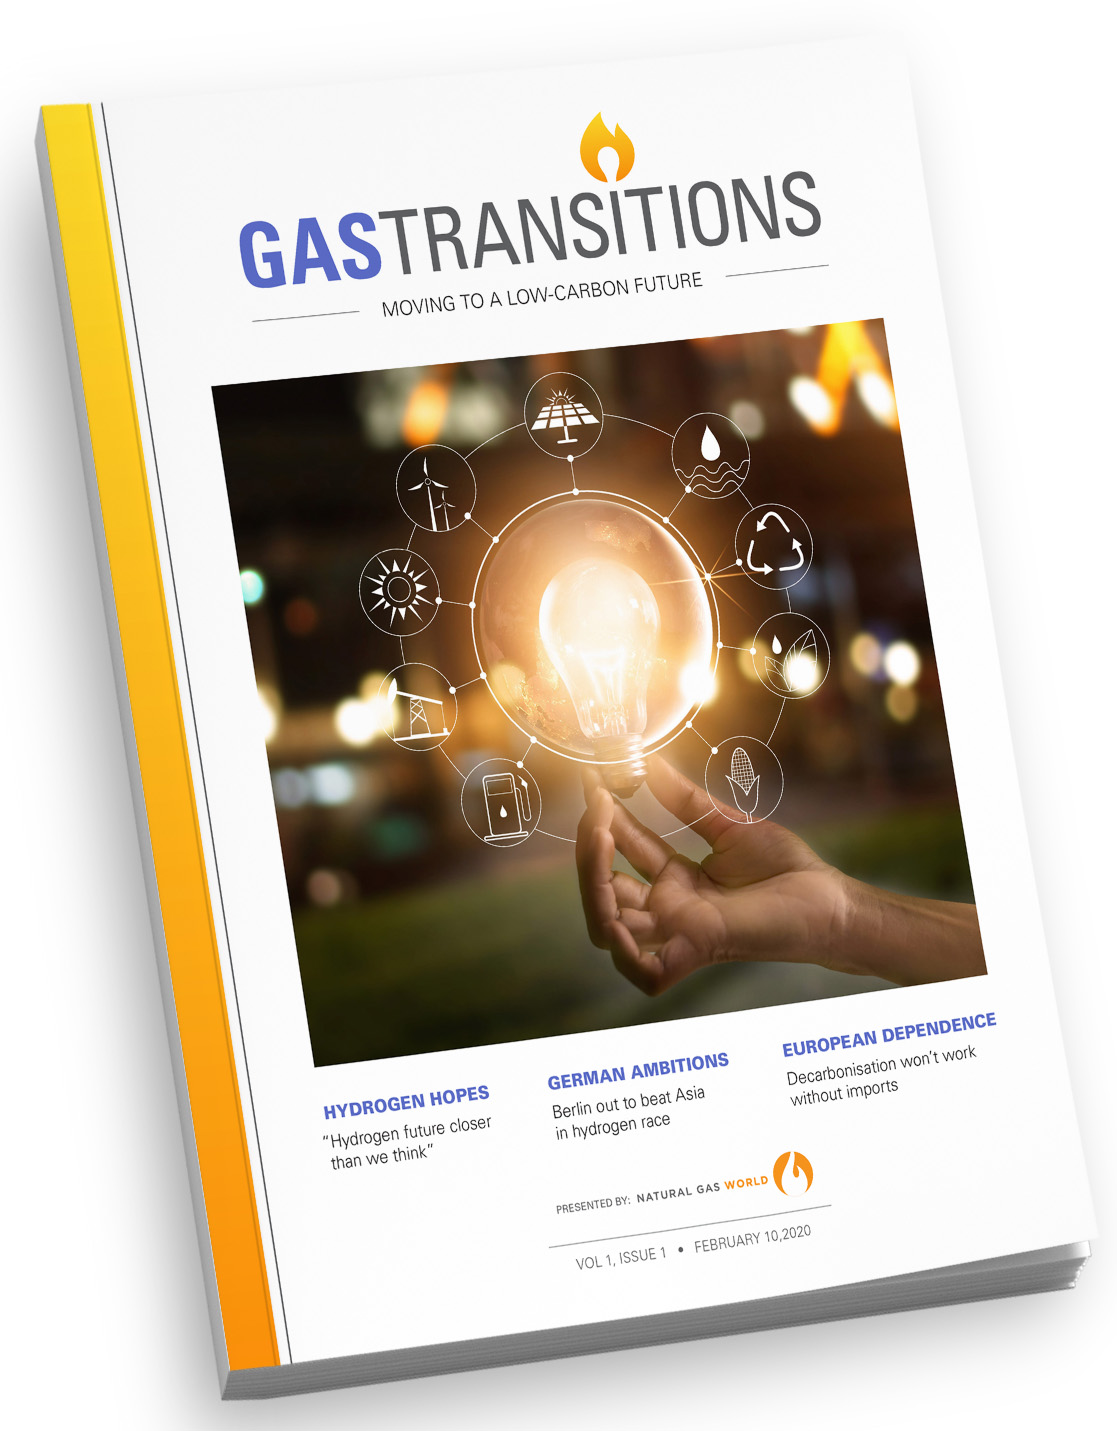 Gas Transitions Vol. 1, Issue 1